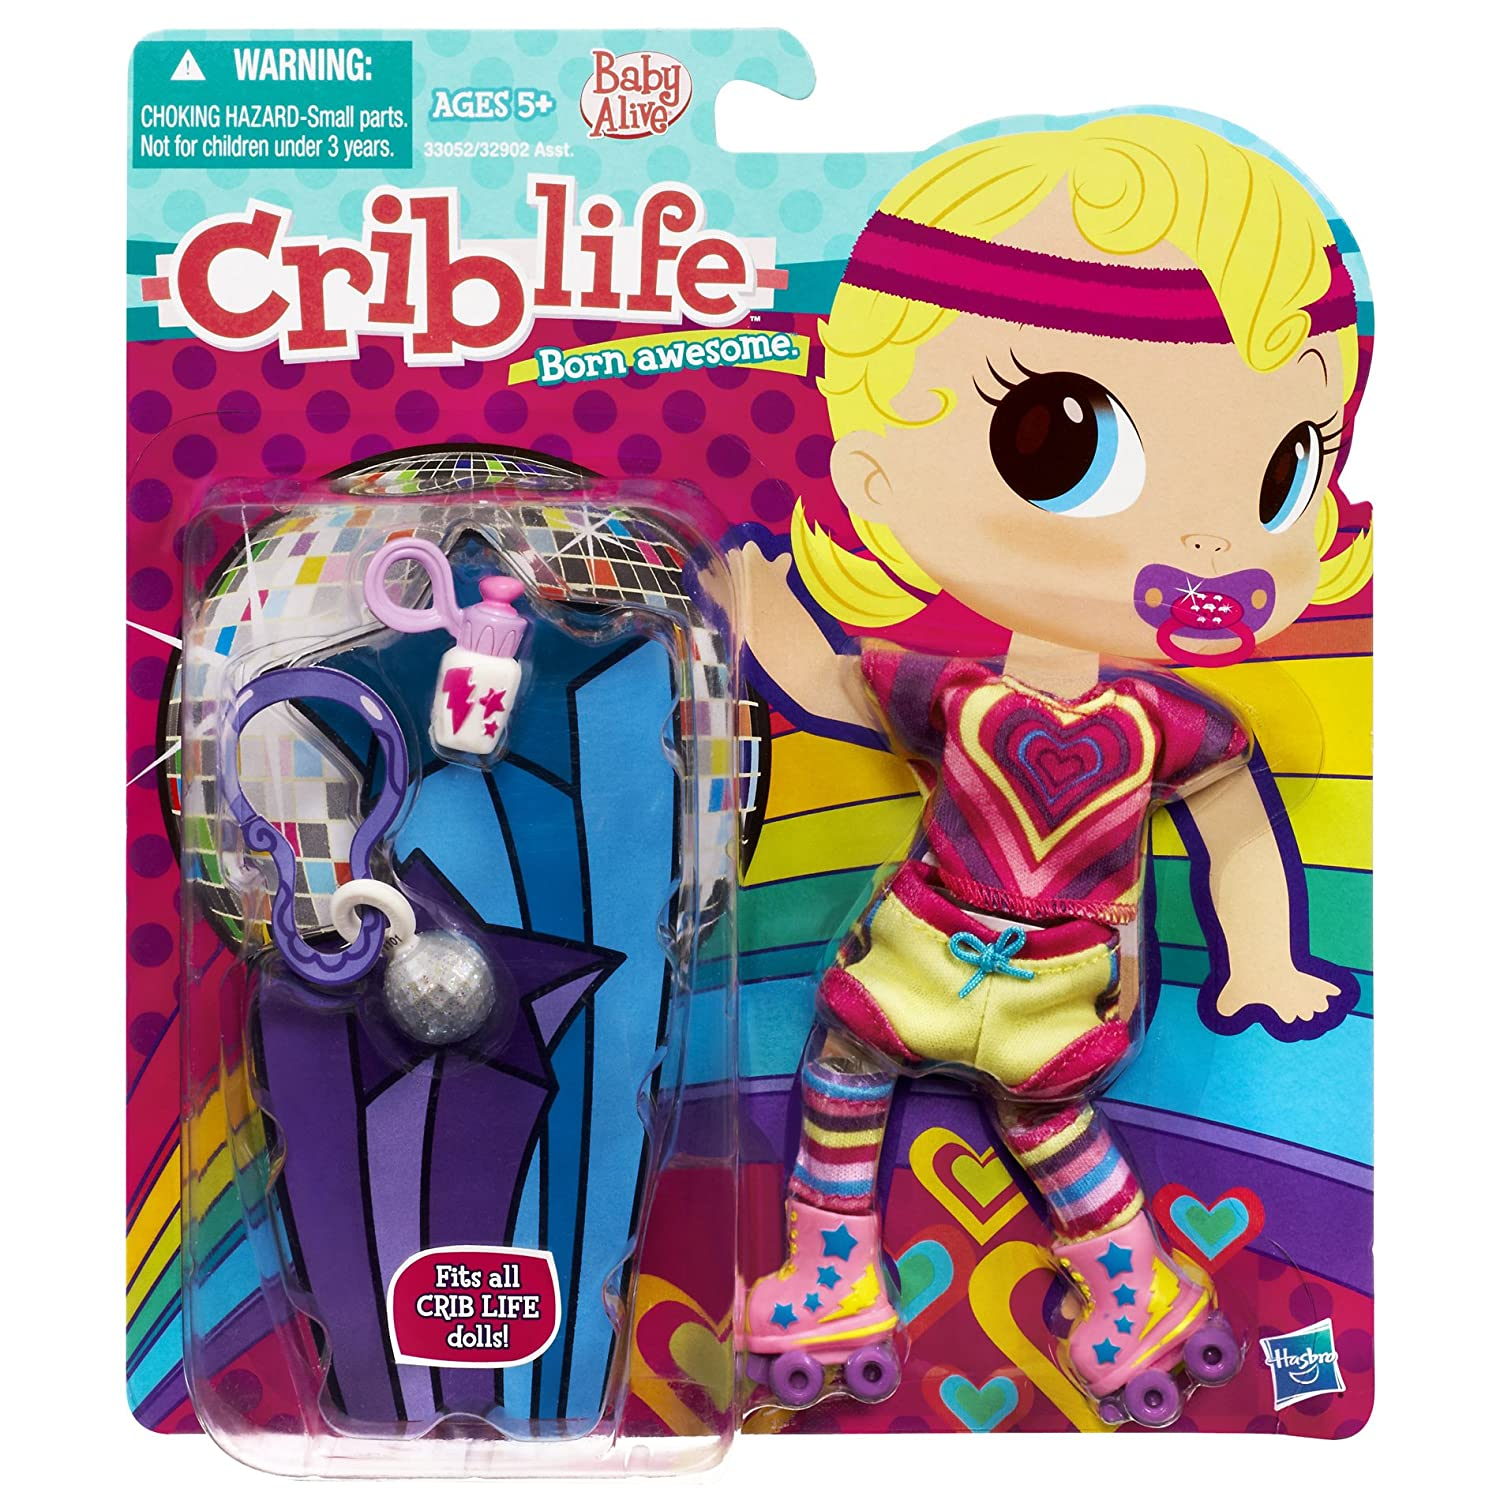 Uncategorized Criblife amazon com baby alive crib life outfit rollerskating toys games